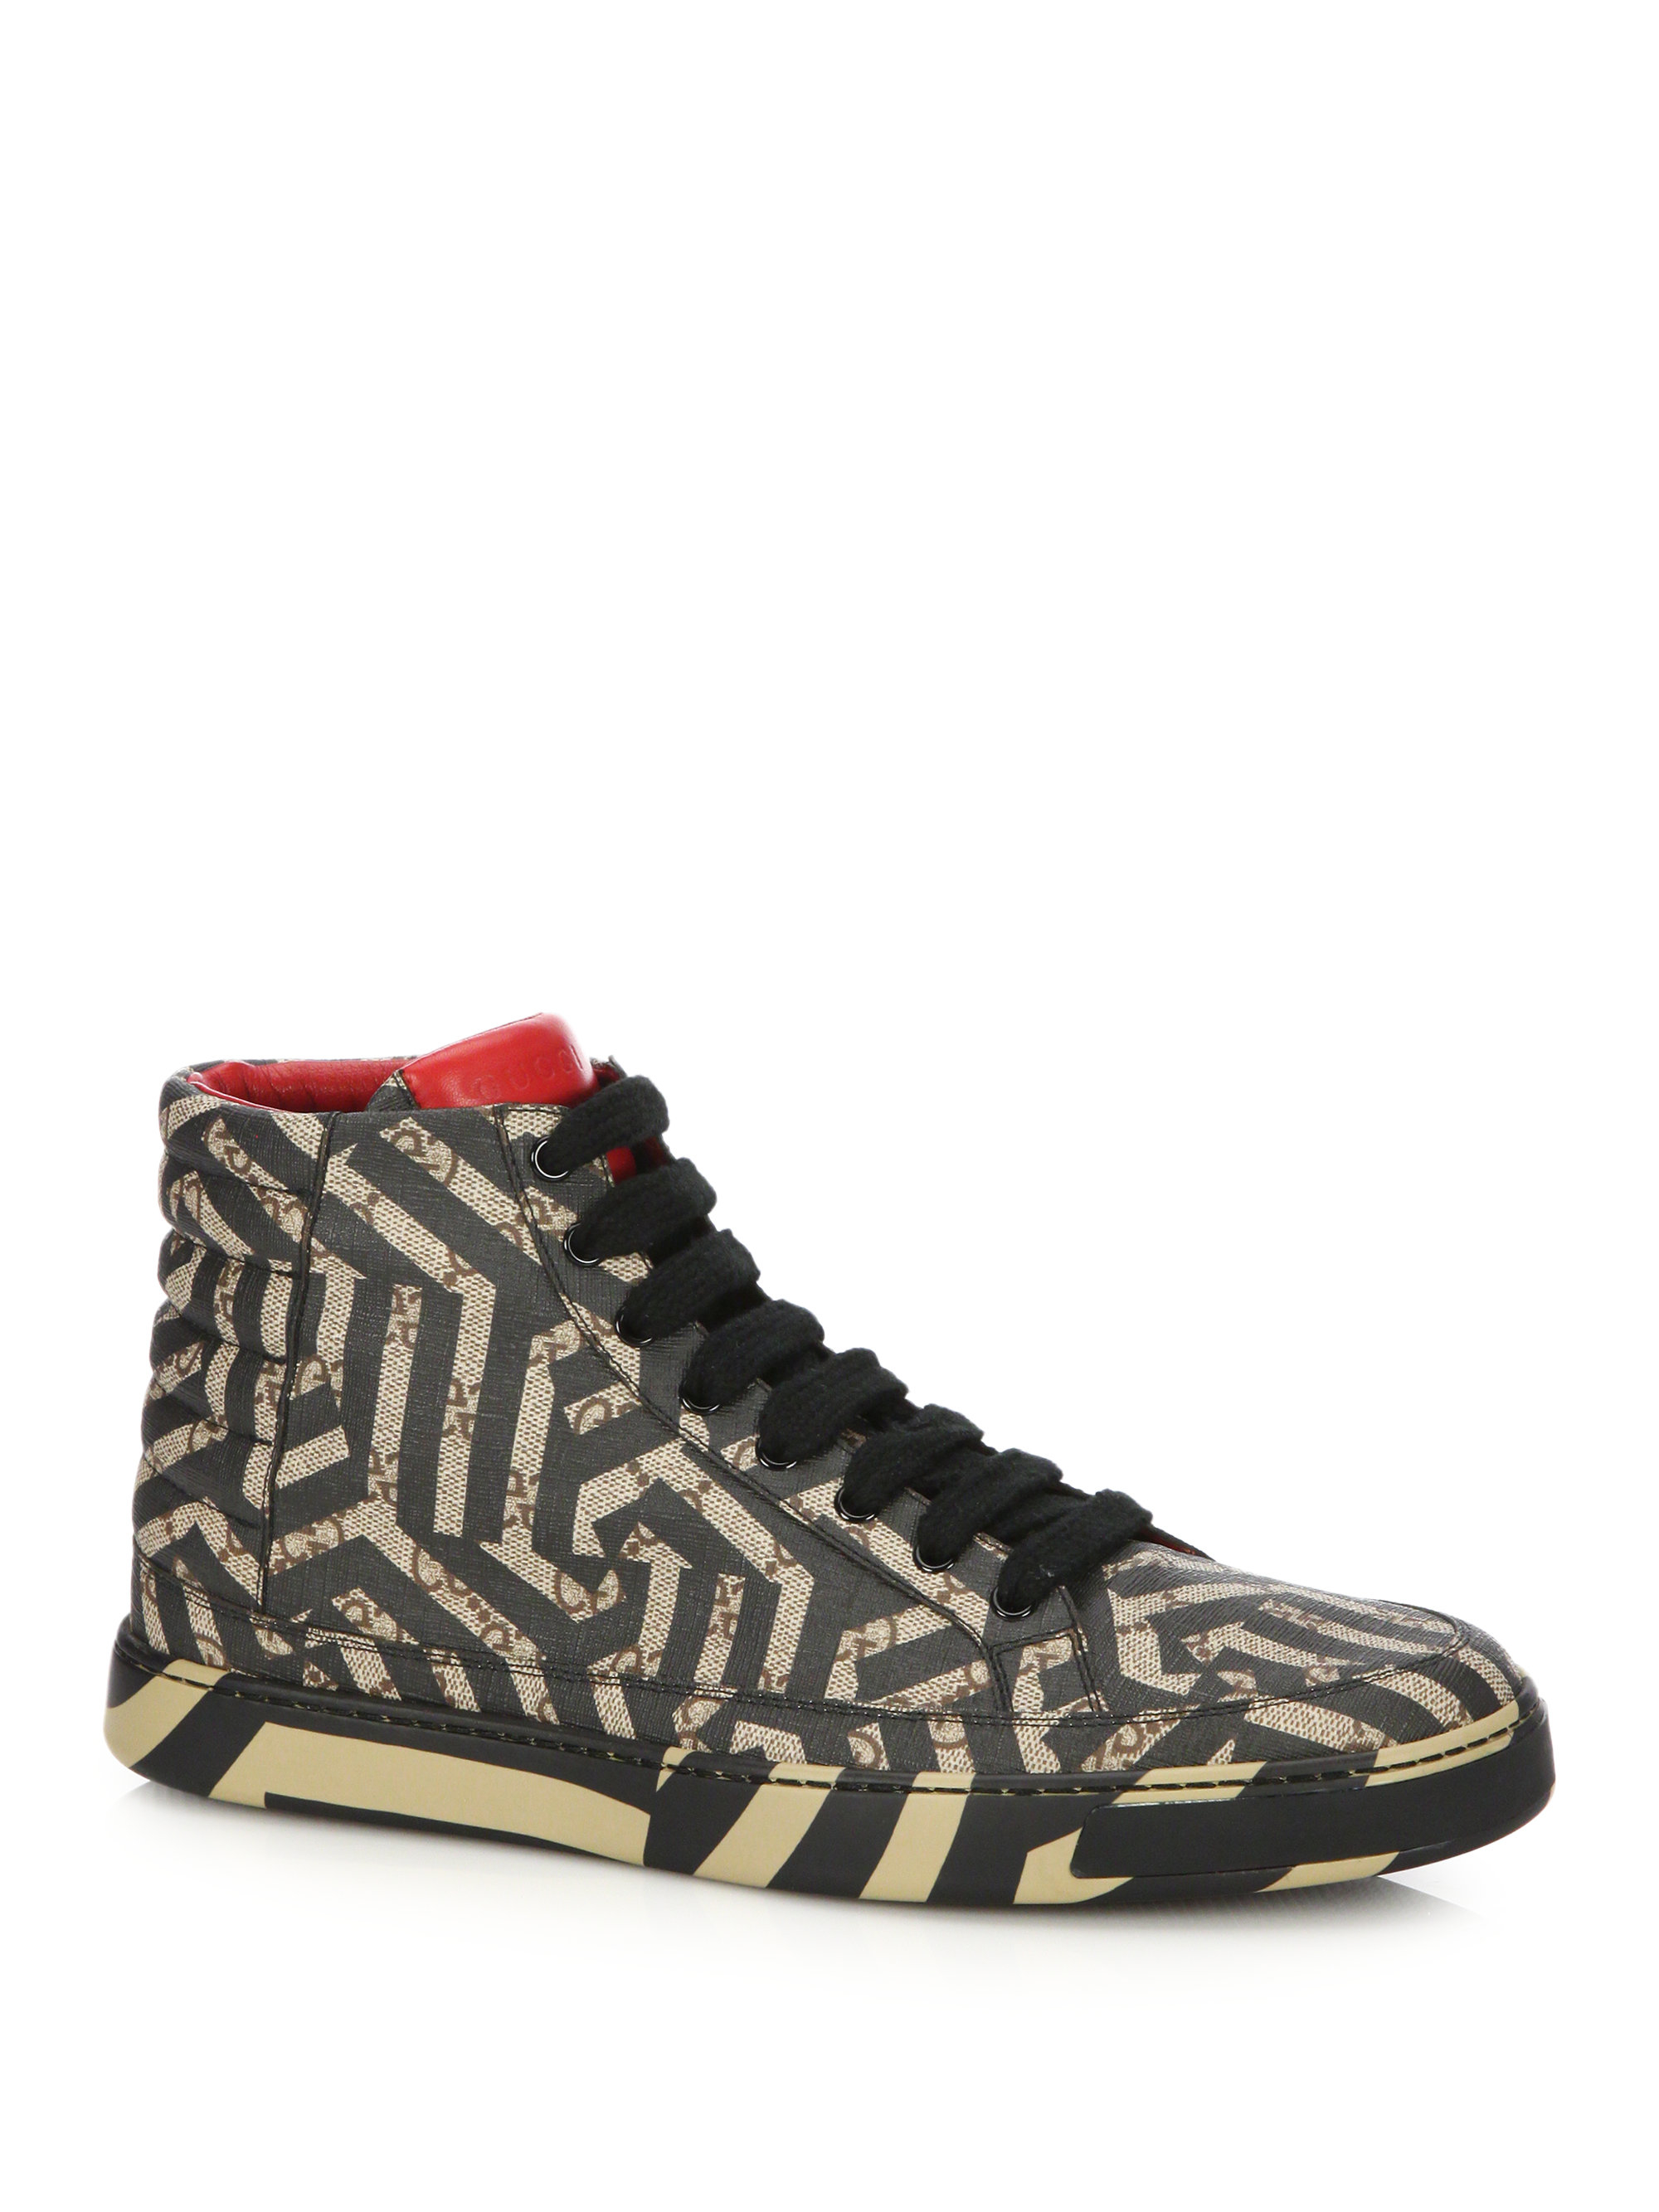 gucci gg caleido high top sneakers in multicolor for men. Black Bedroom Furniture Sets. Home Design Ideas